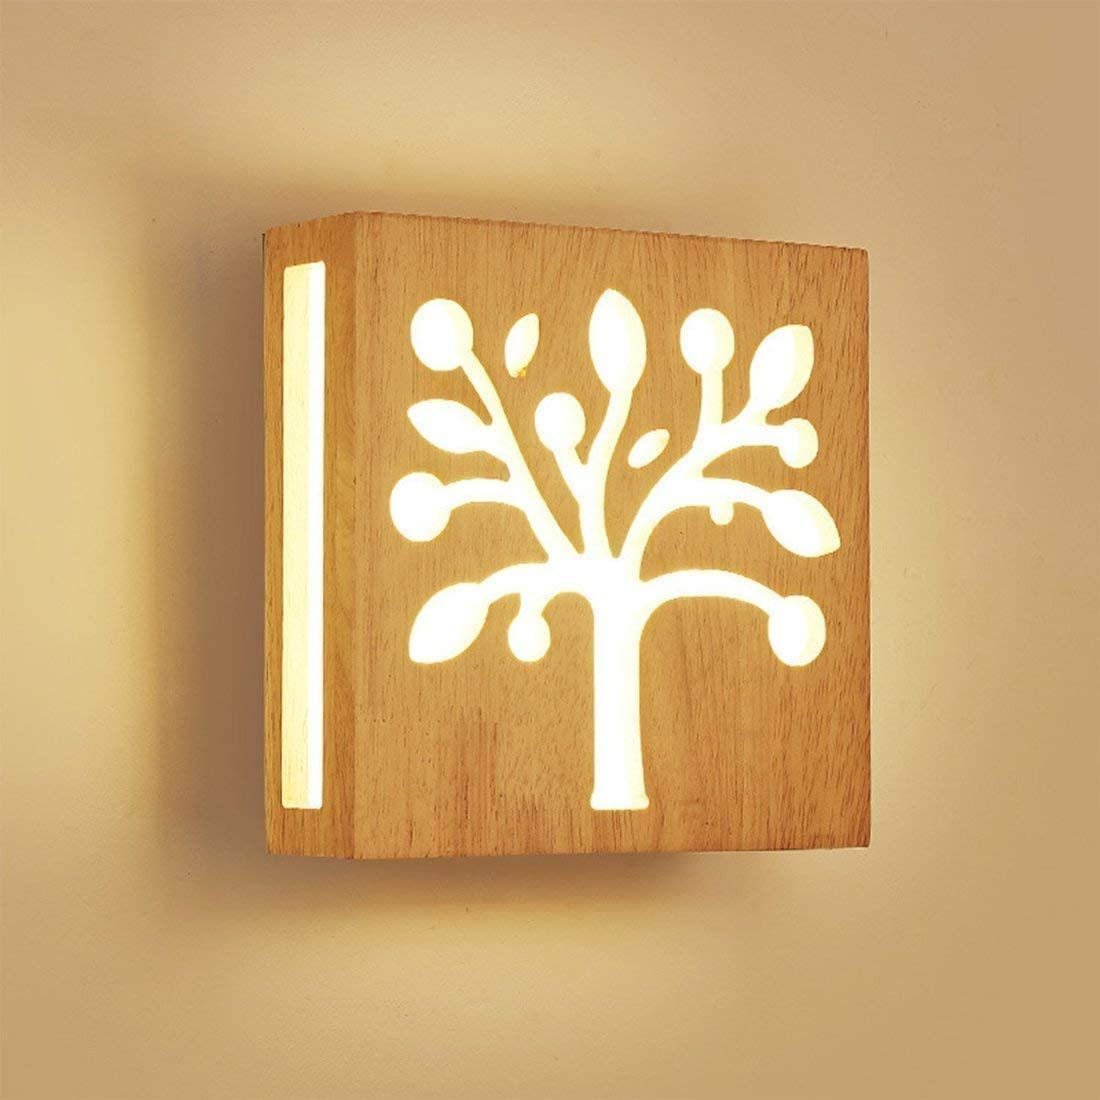 12W Luz calida LED Aplique de pared Madera Hueco Escultura Árbol Moderno Creativo Cuadrado Lámpara de pared Luces nocturnas para Niños Cuarto Cabecera Sala Pasillo Design Escalera Art Decoración: Amazon.es: Iluminación